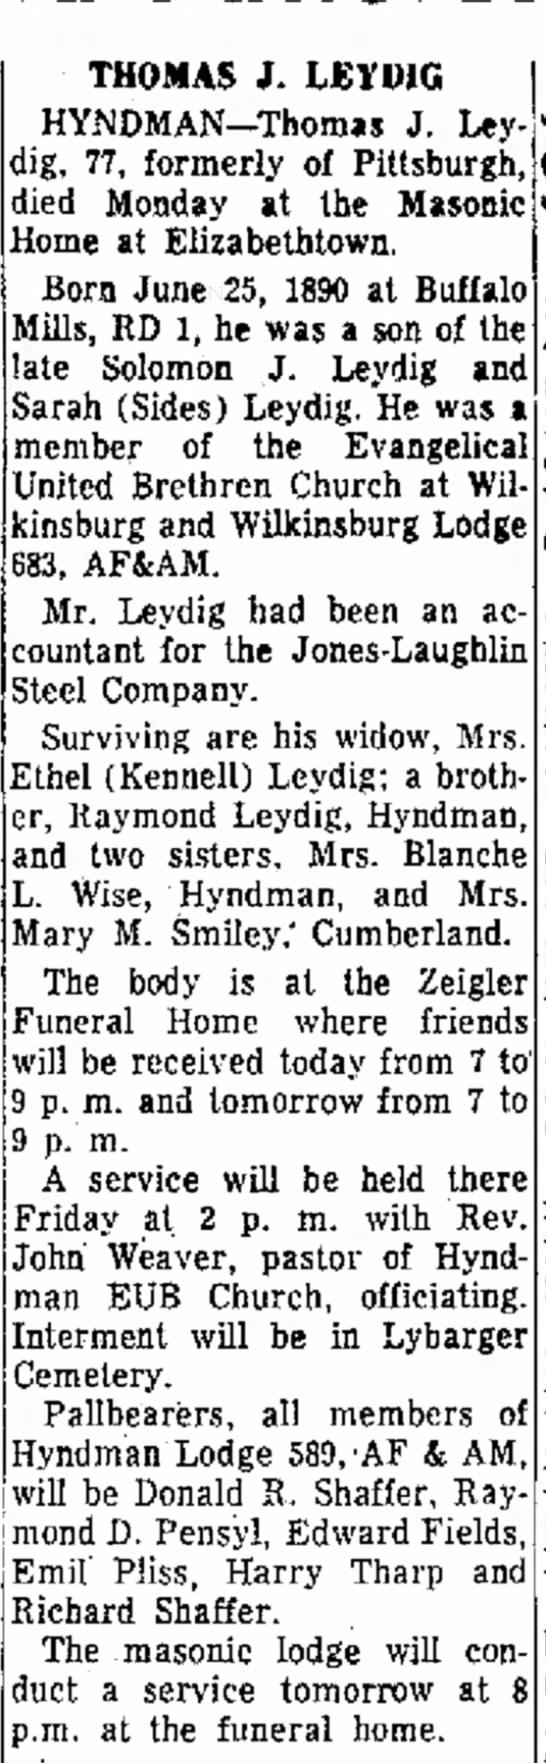 Thomas J. Leydig, Blanche L. Wise's Brother's Death Notice 1967 -